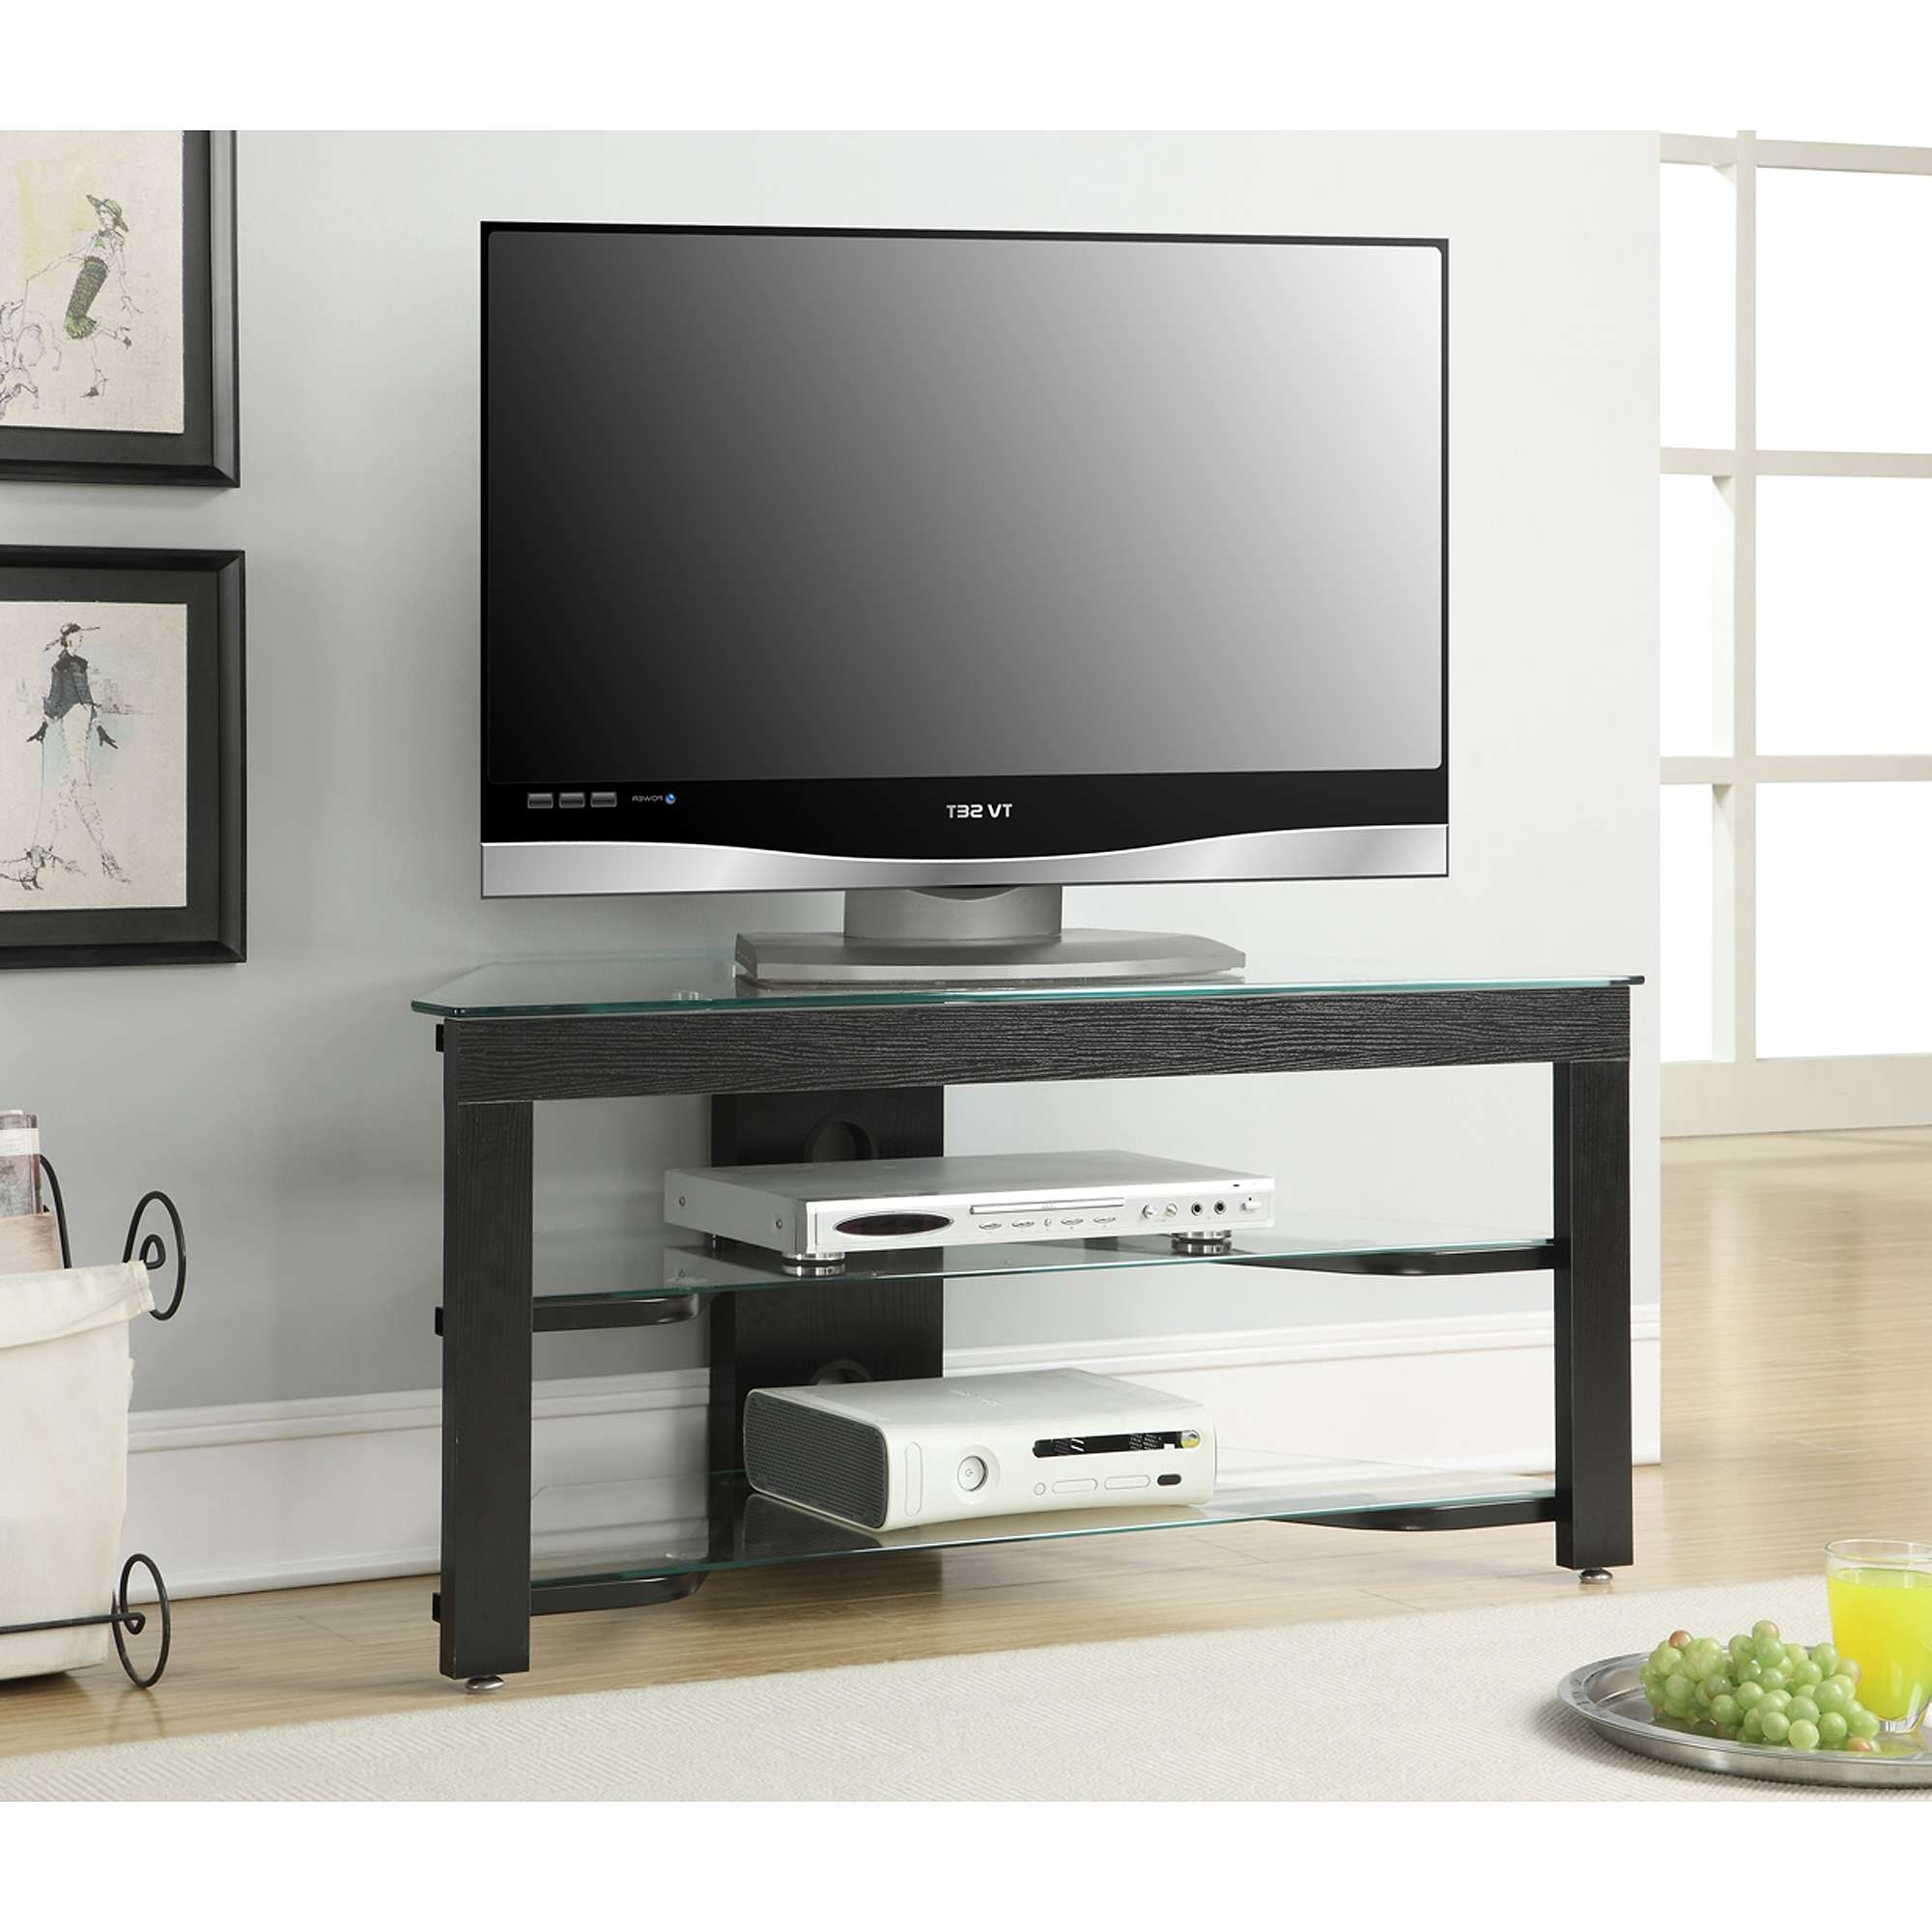 Tv Stand With Rounded Corners – Round Designs For Tv Stands Rounded Corners (View 8 of 15)